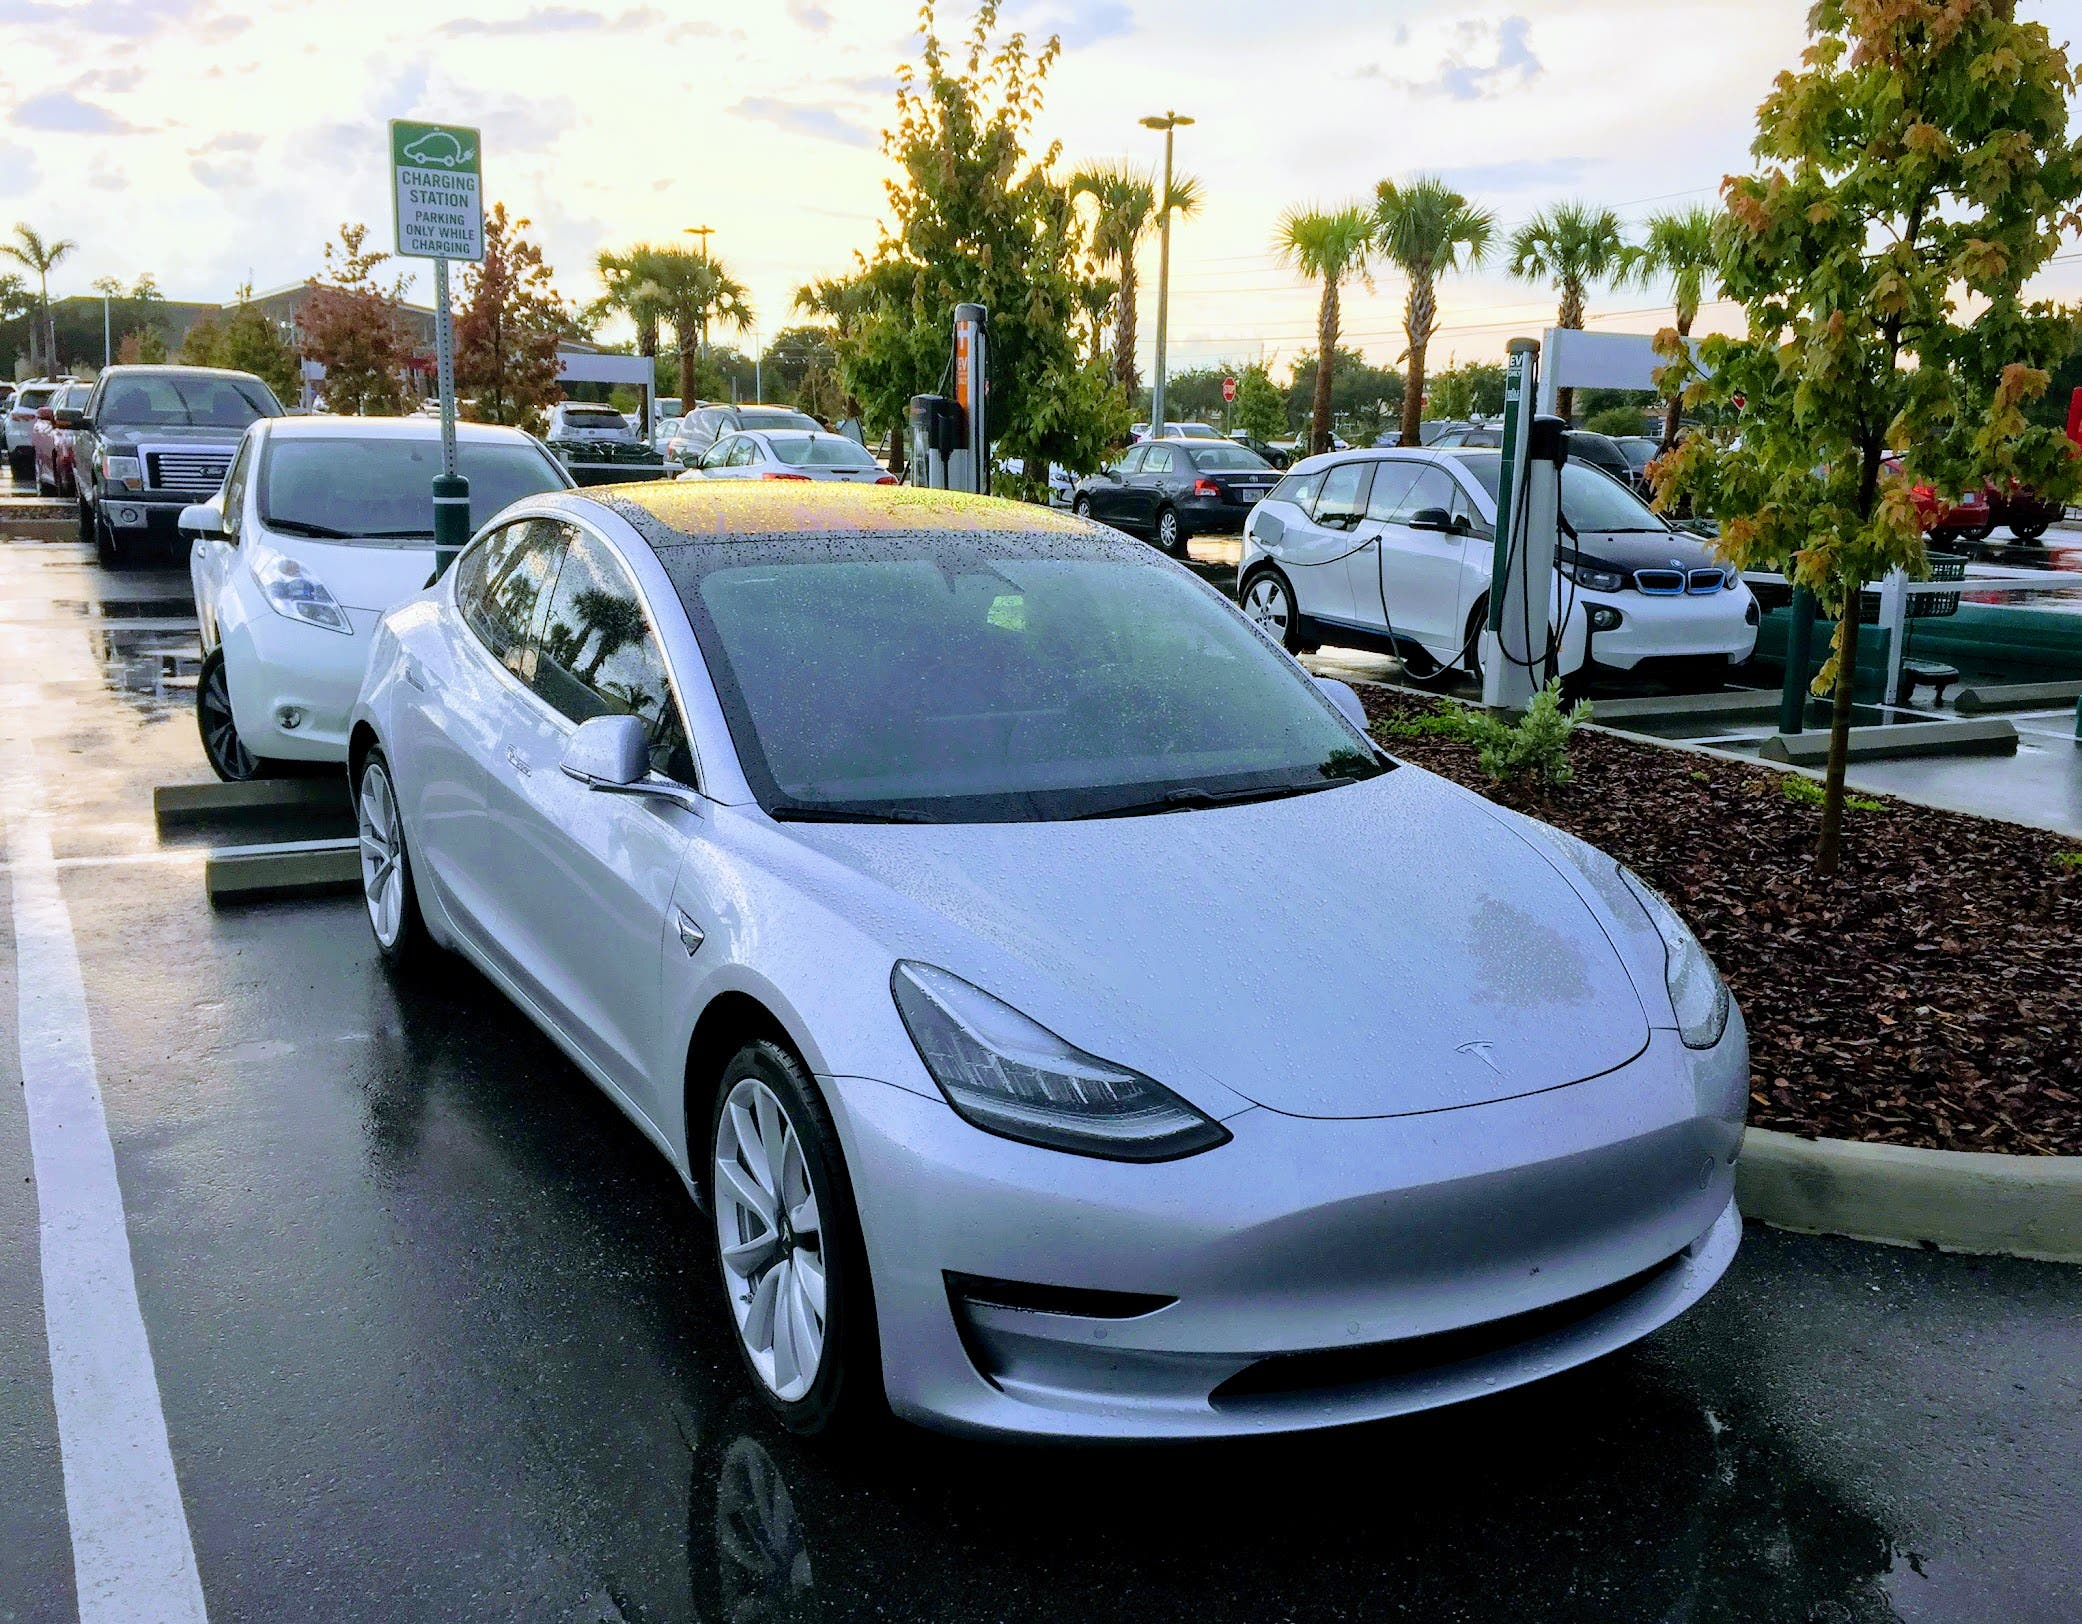 88 CleanTechnica Electric Vehicle Reviews | CleanTechnica